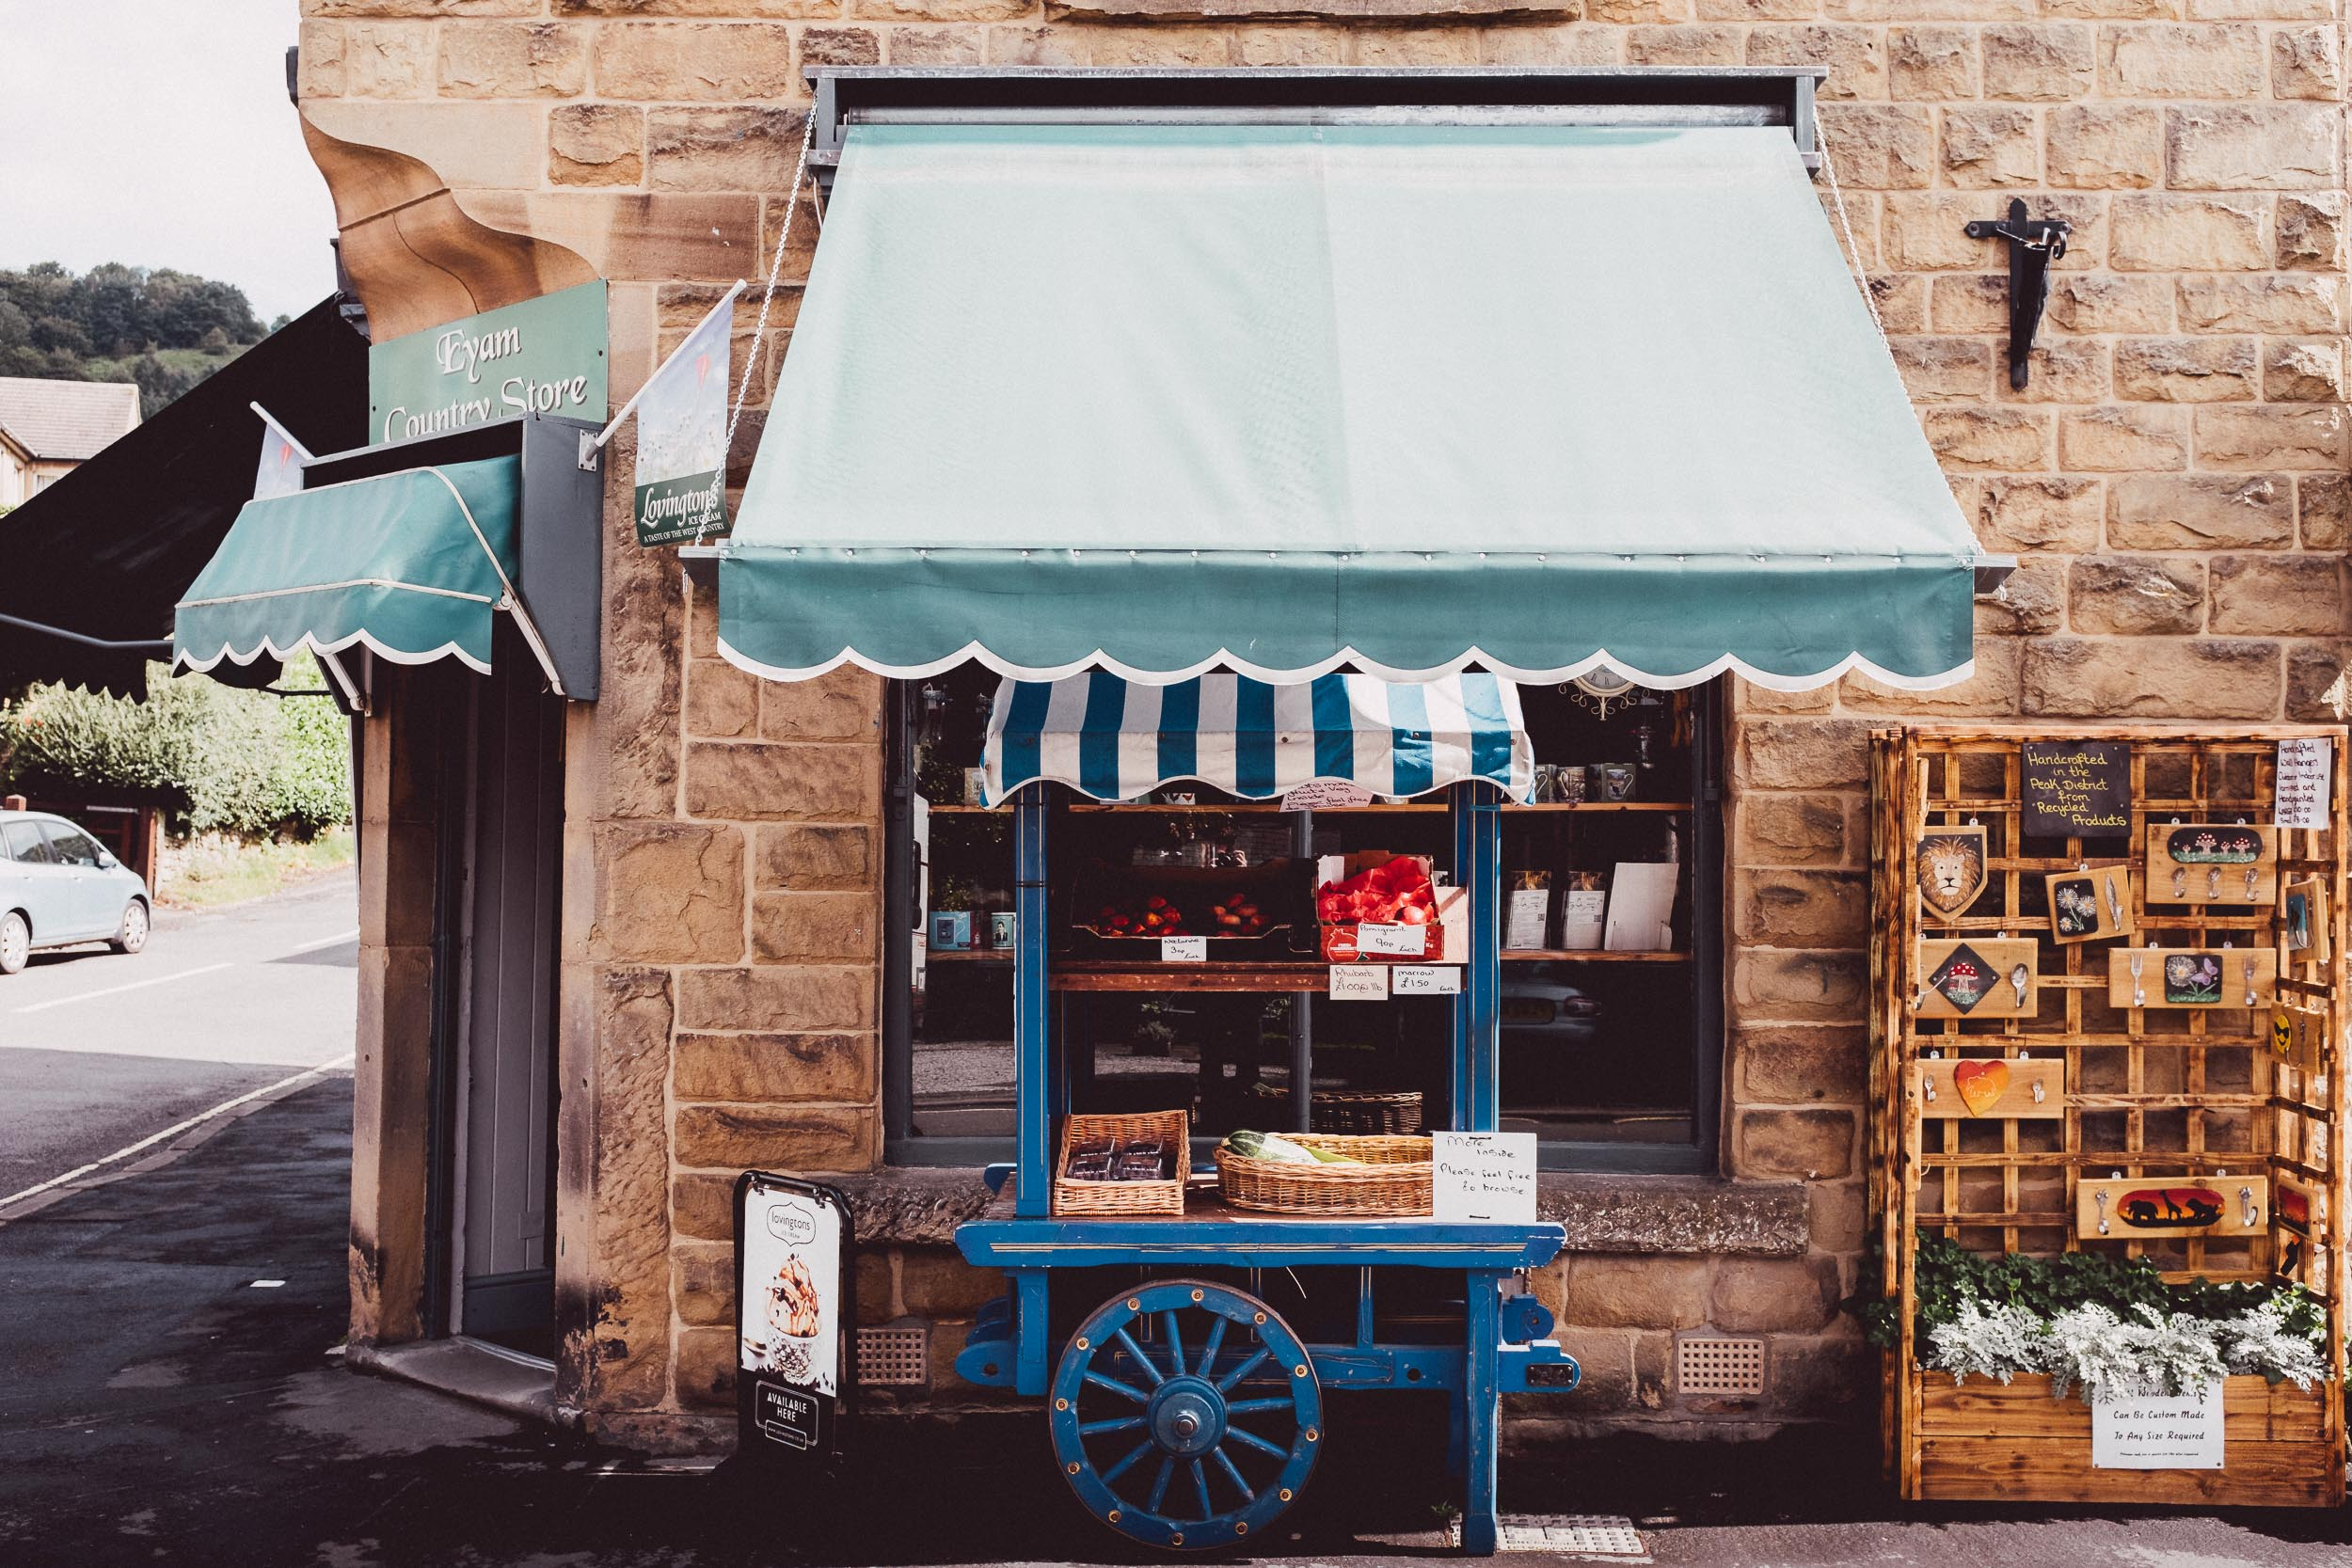 Eyam Country Store